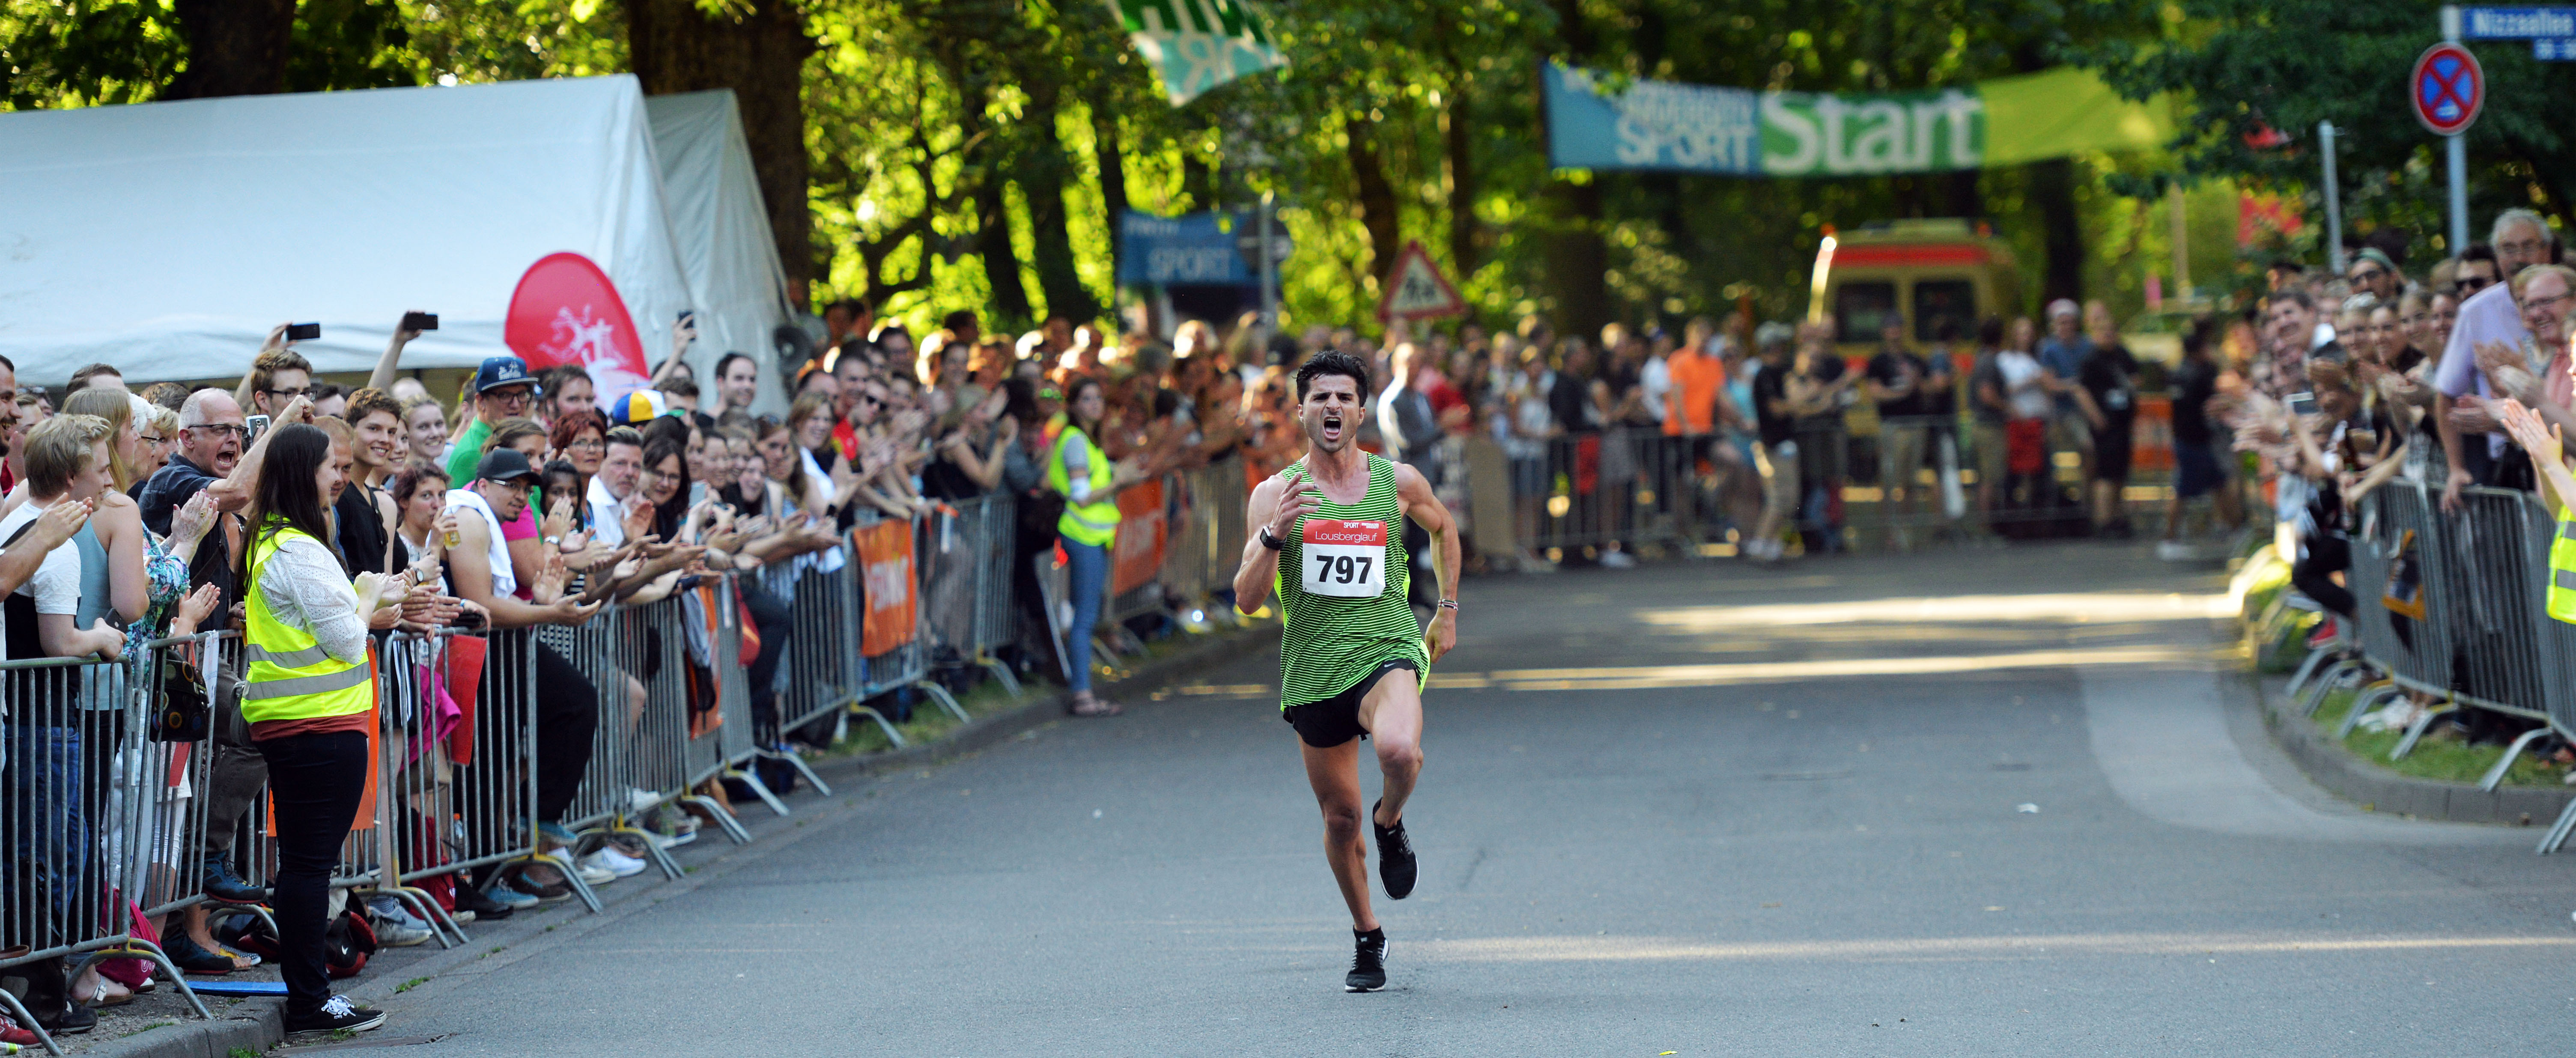 Winner Moussa Hudrog while reaching the finish line